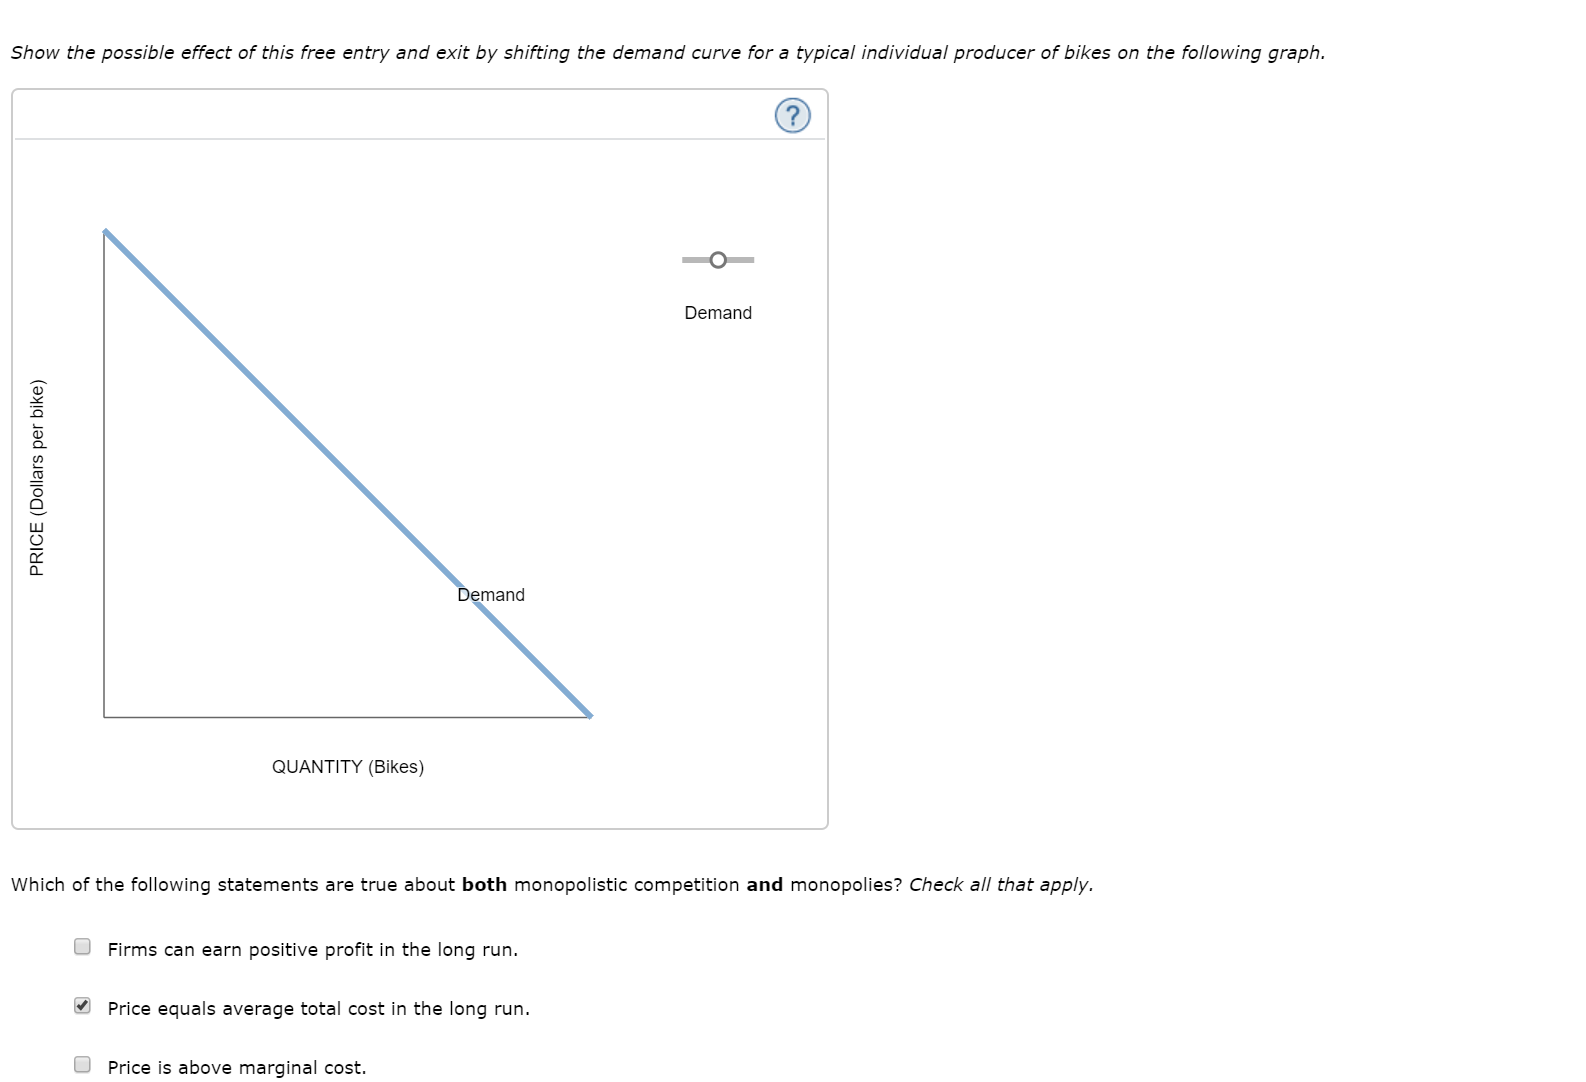 Show the possible effect of this free entry and exit by shifting the demand curve for a typical individual producer of bikes on the following graph. Demand Demand QUANTITY (Bikes) Which of the following statements are true about both monopolistic competition and monopolies? Check all that apply. Firms can earn positive profit in the long run Price equals average total cost in the long run. Price is above marginal cost. PRICE (Dollars per bike)